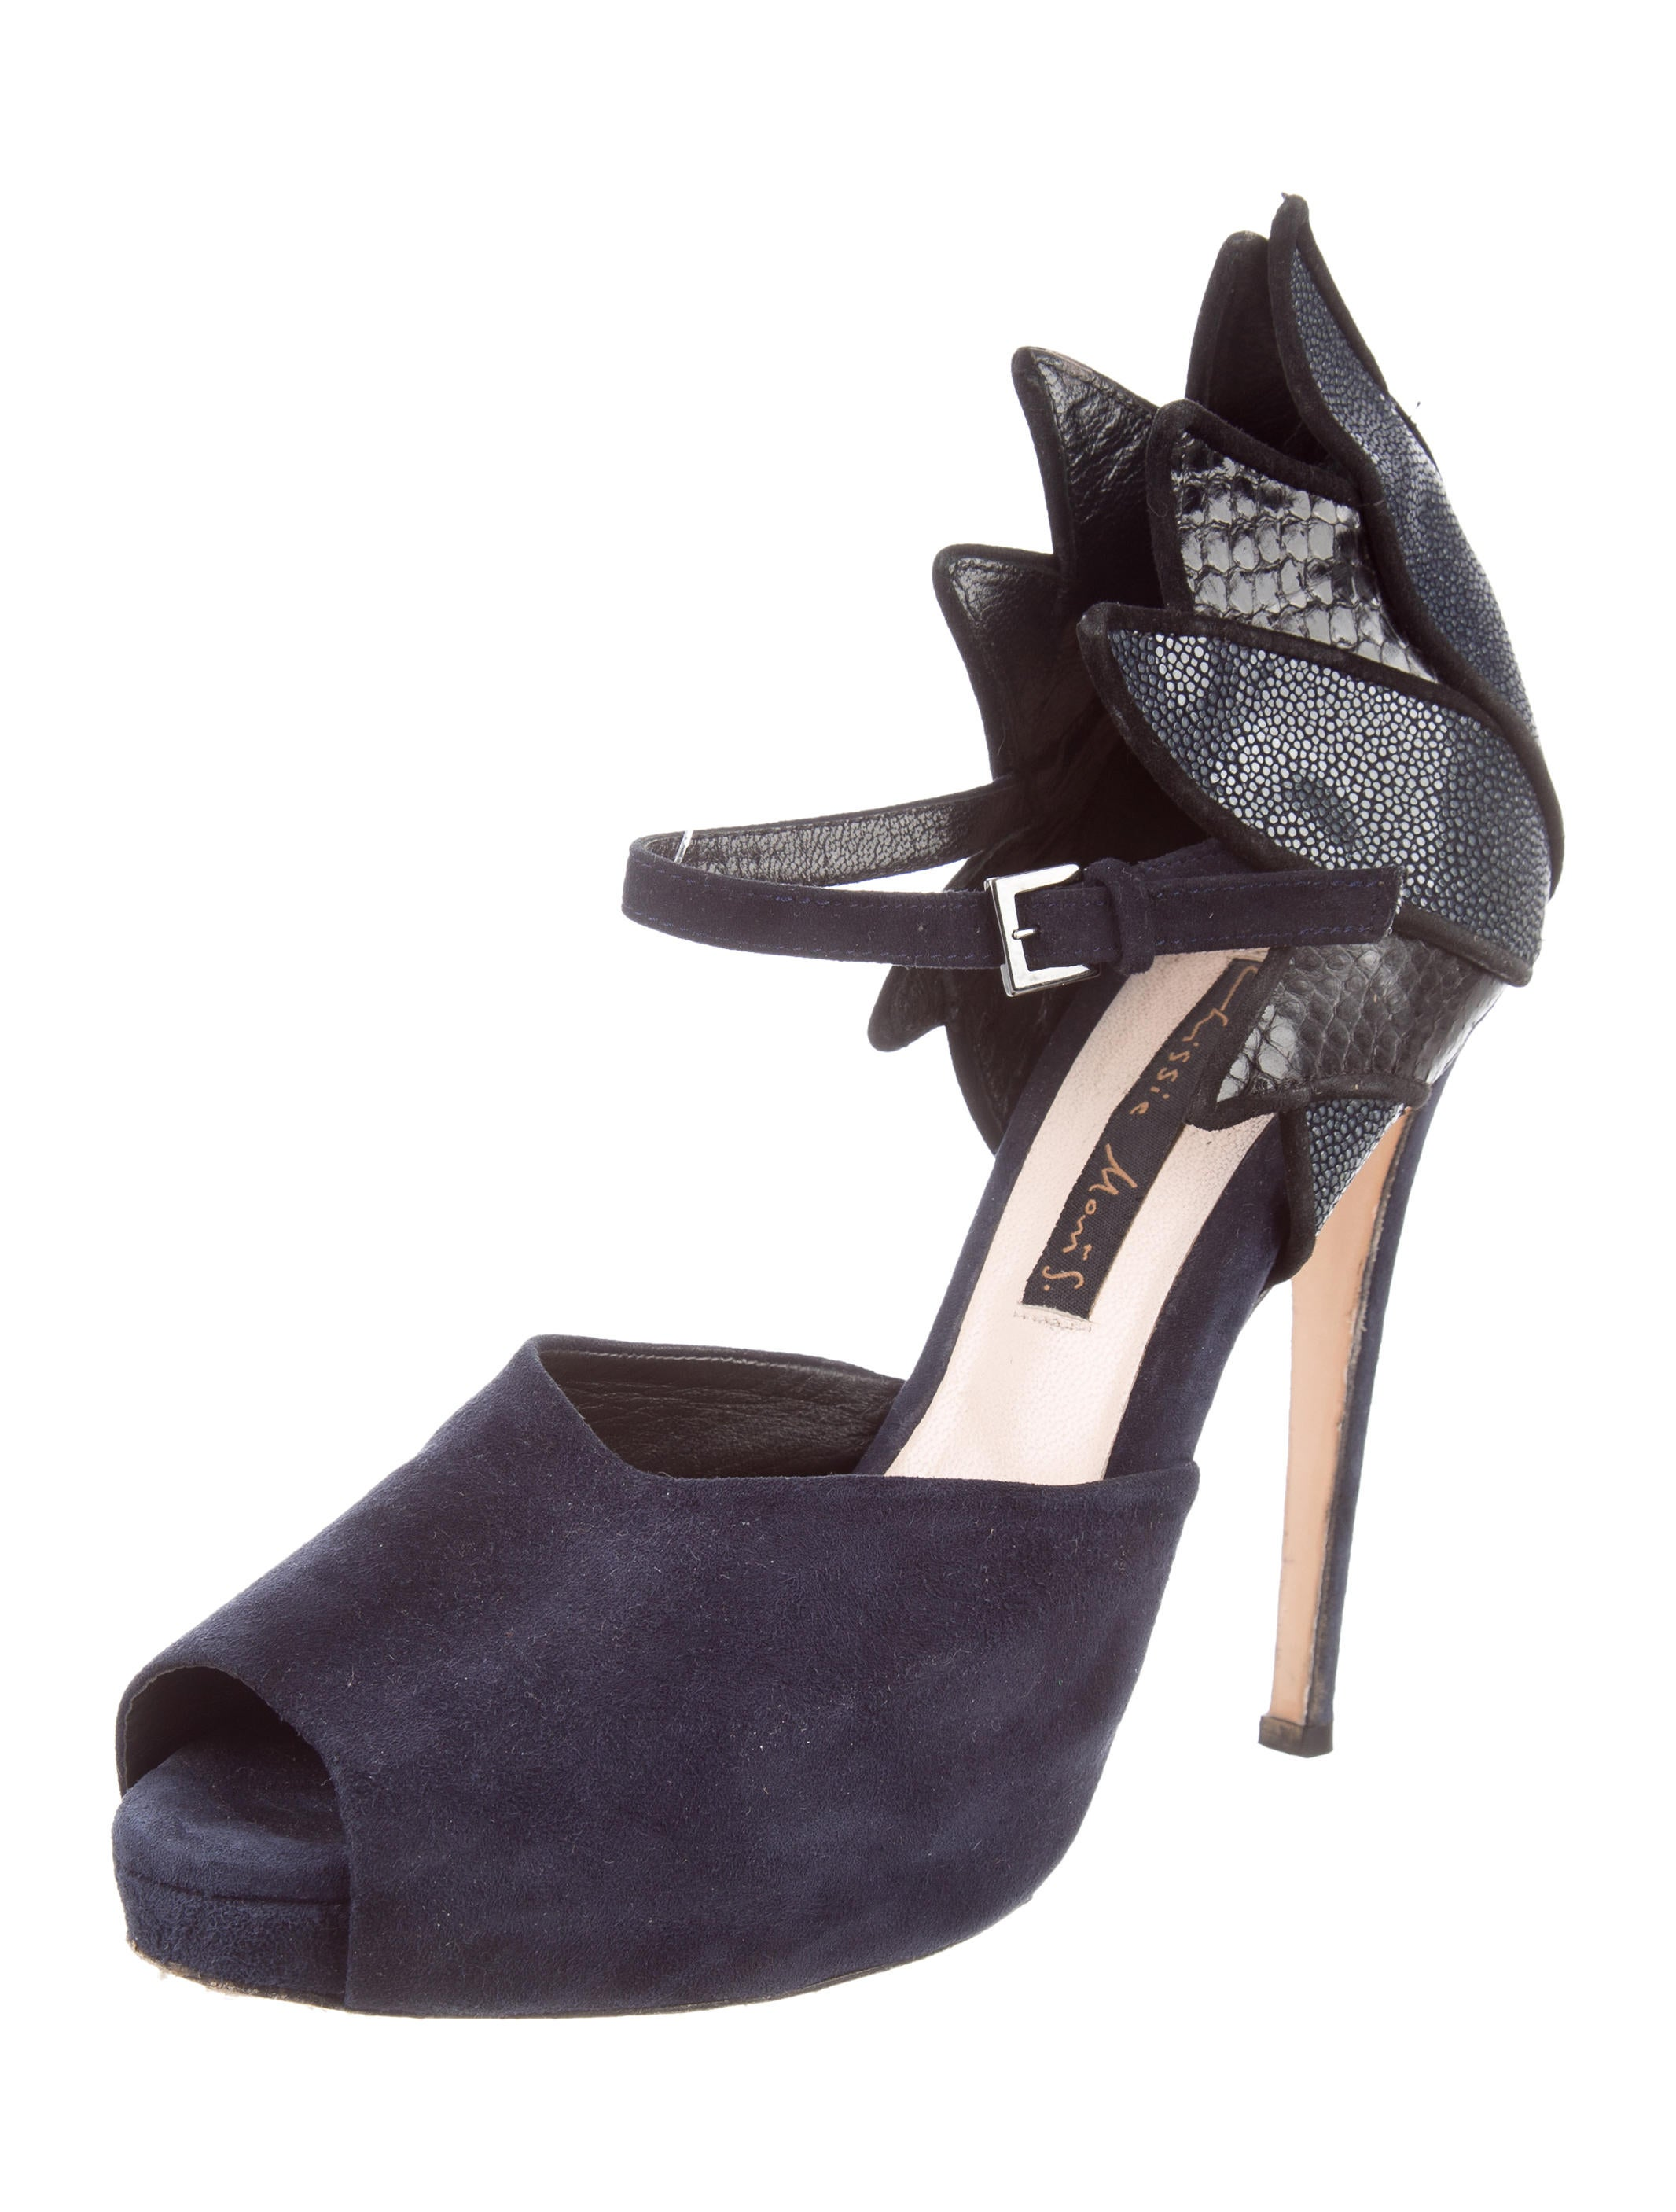 Chrissie Morris Stingray-Accented Slingback Sandals eastbay cheap price lVll50